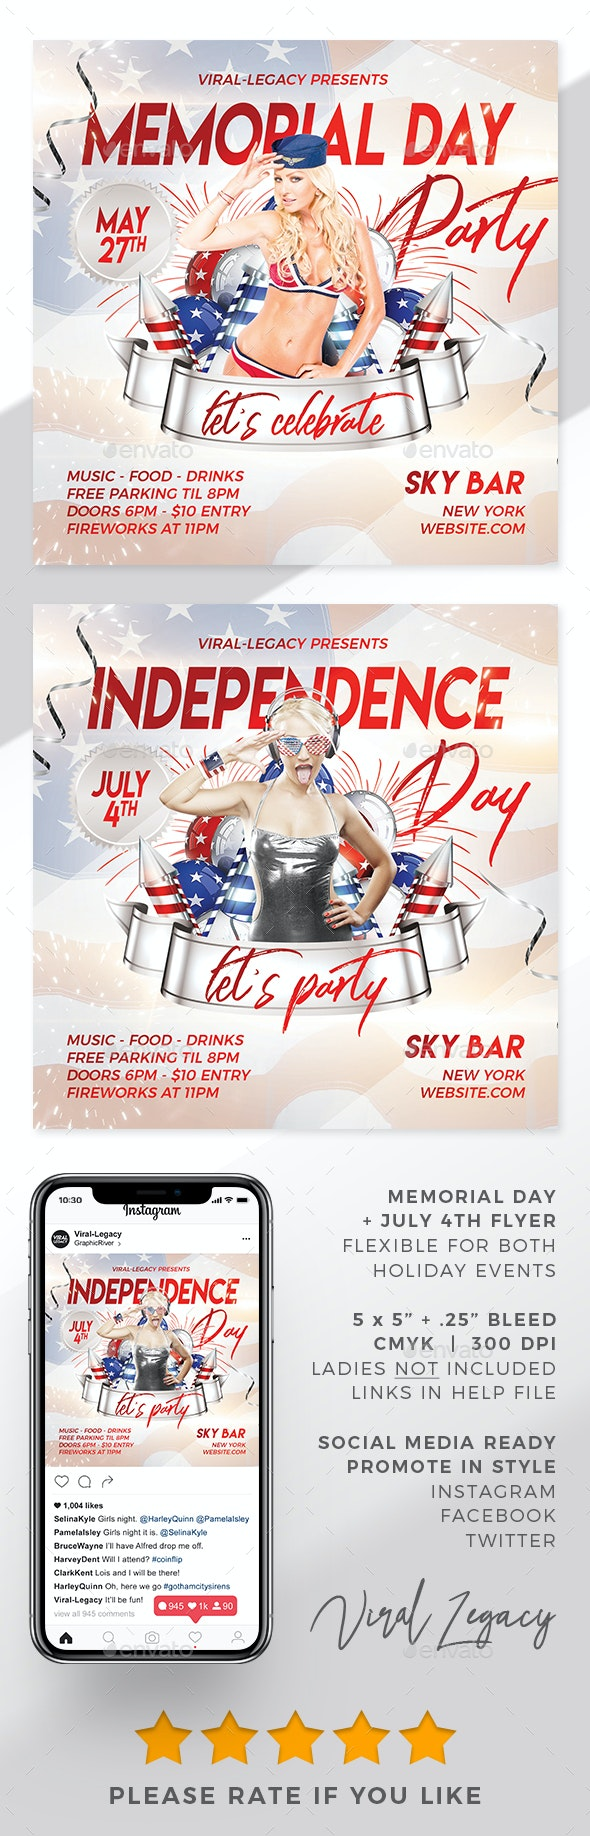 Memorial Day + 4th of July Party Flyer - Flyers Print Templates